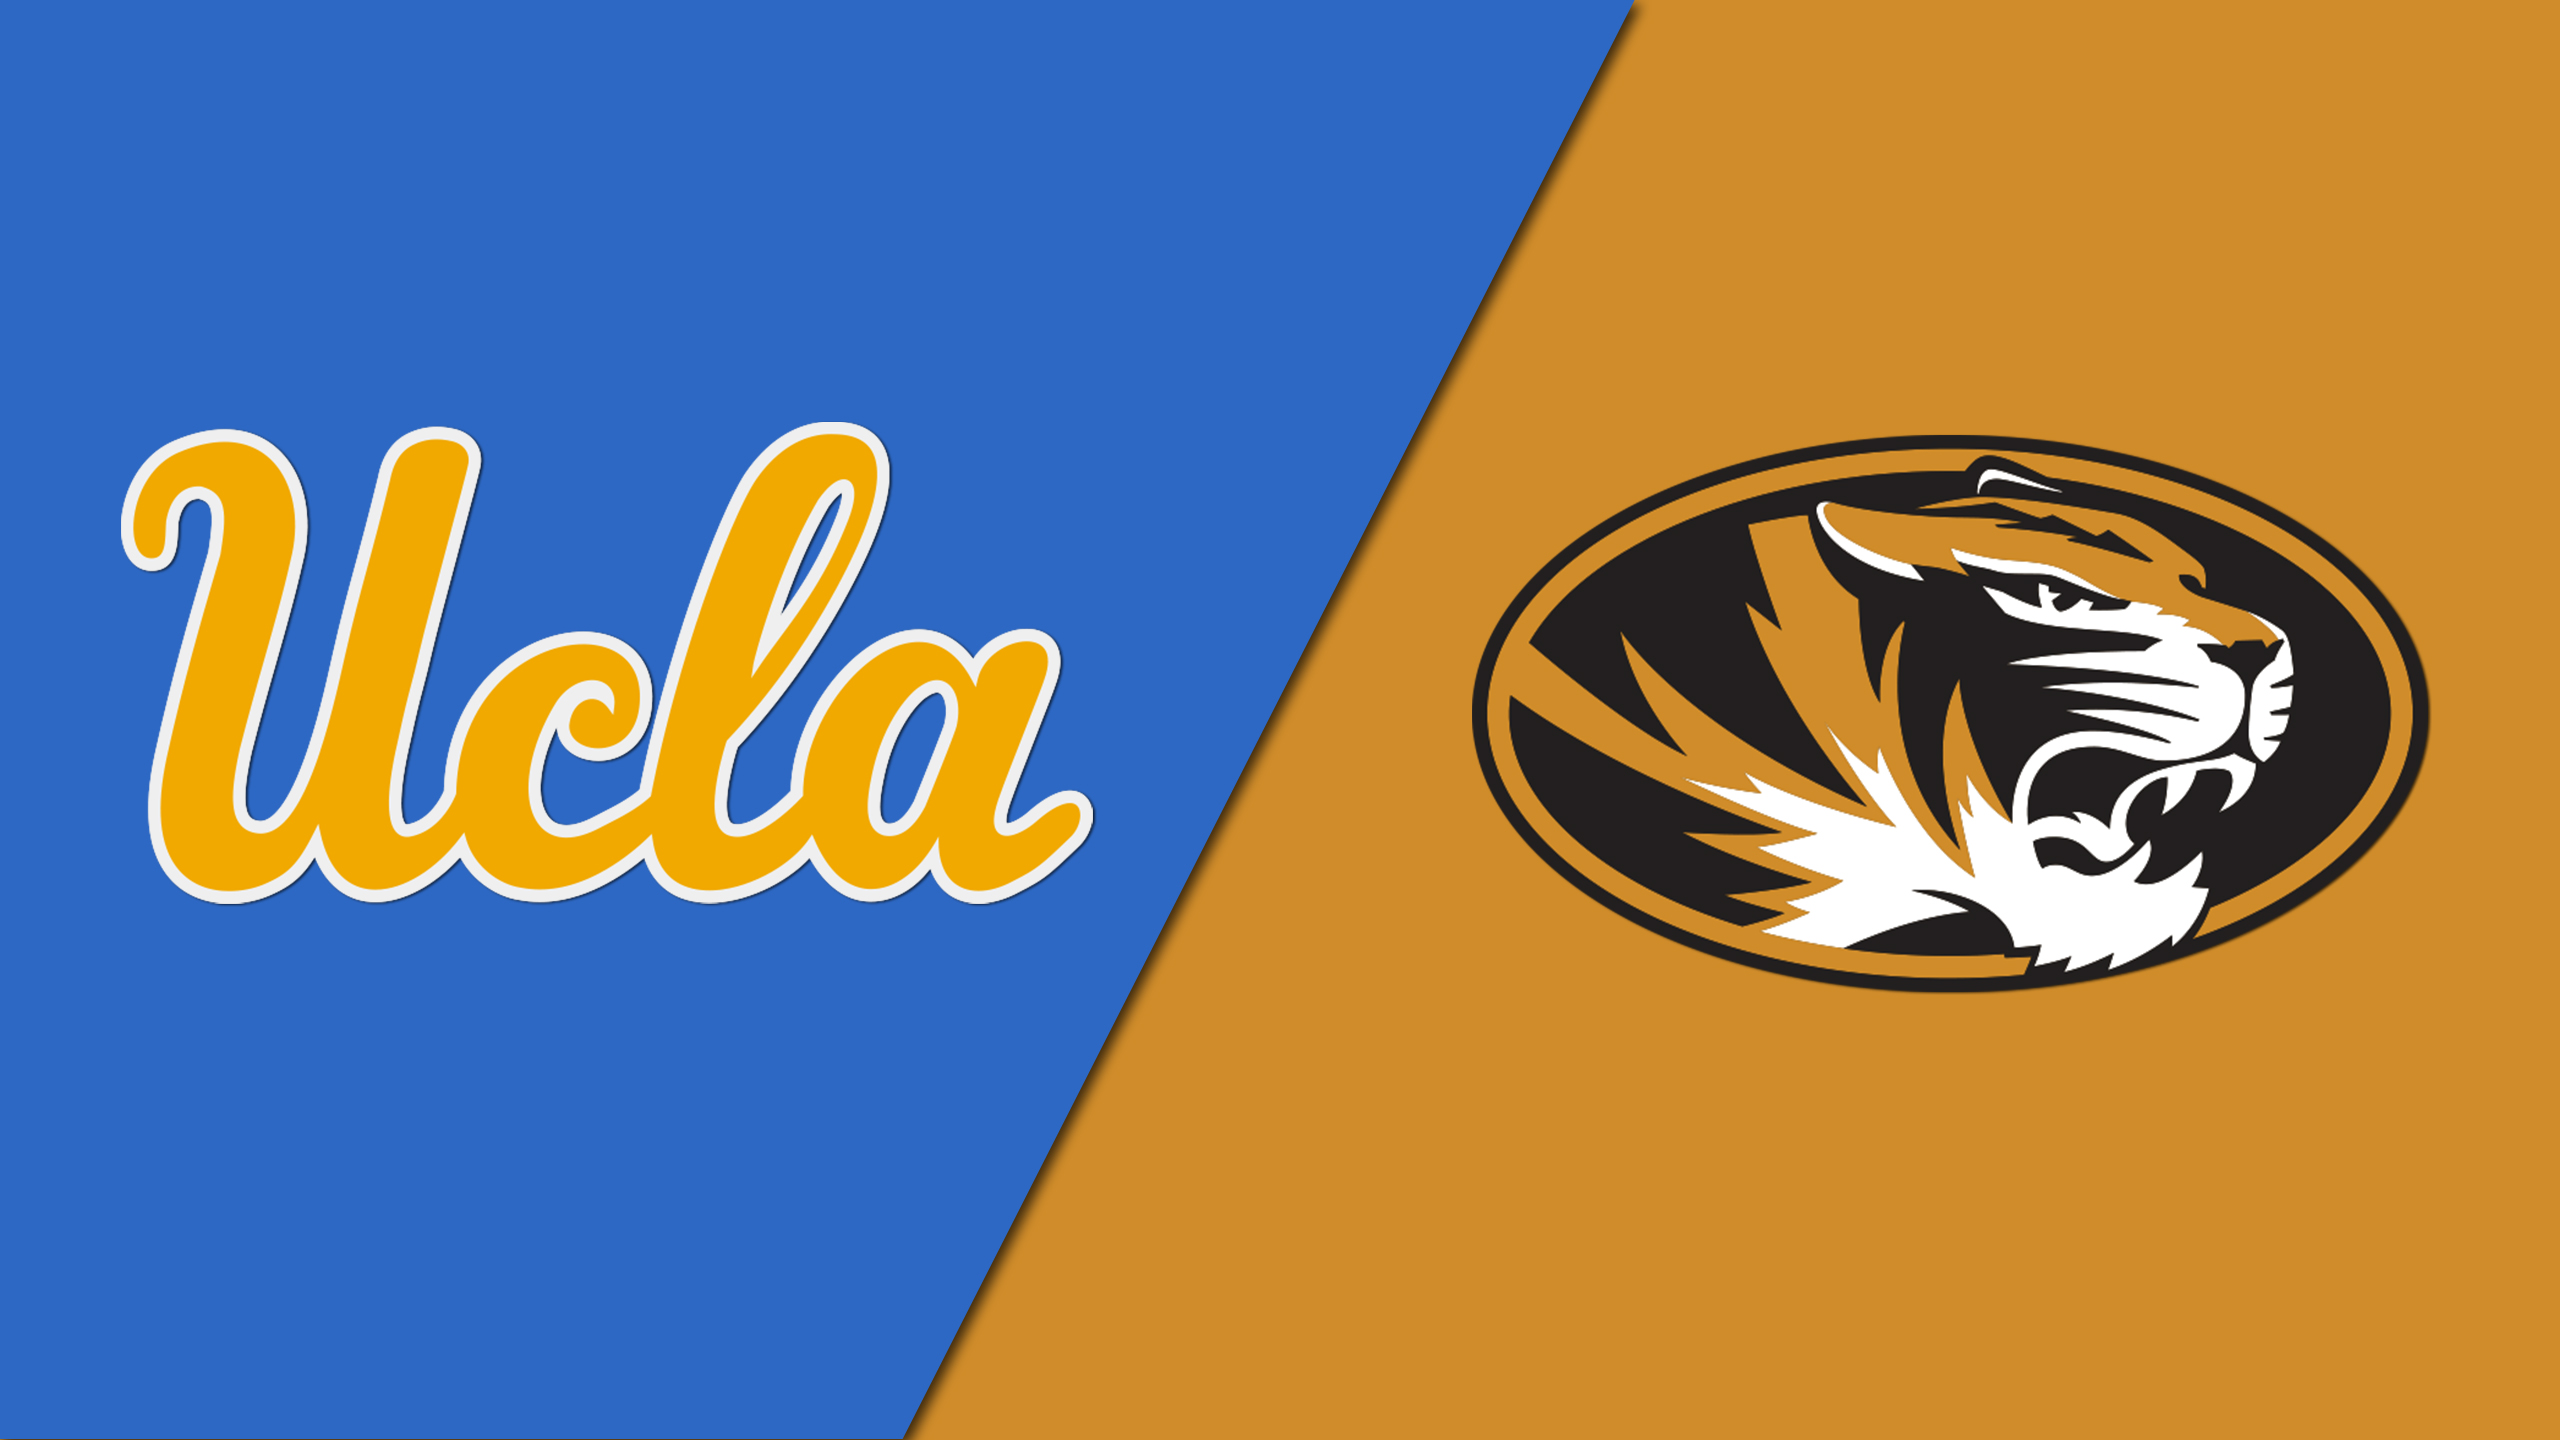 UCLA vs. Missouri (Site 8 / Game 6)